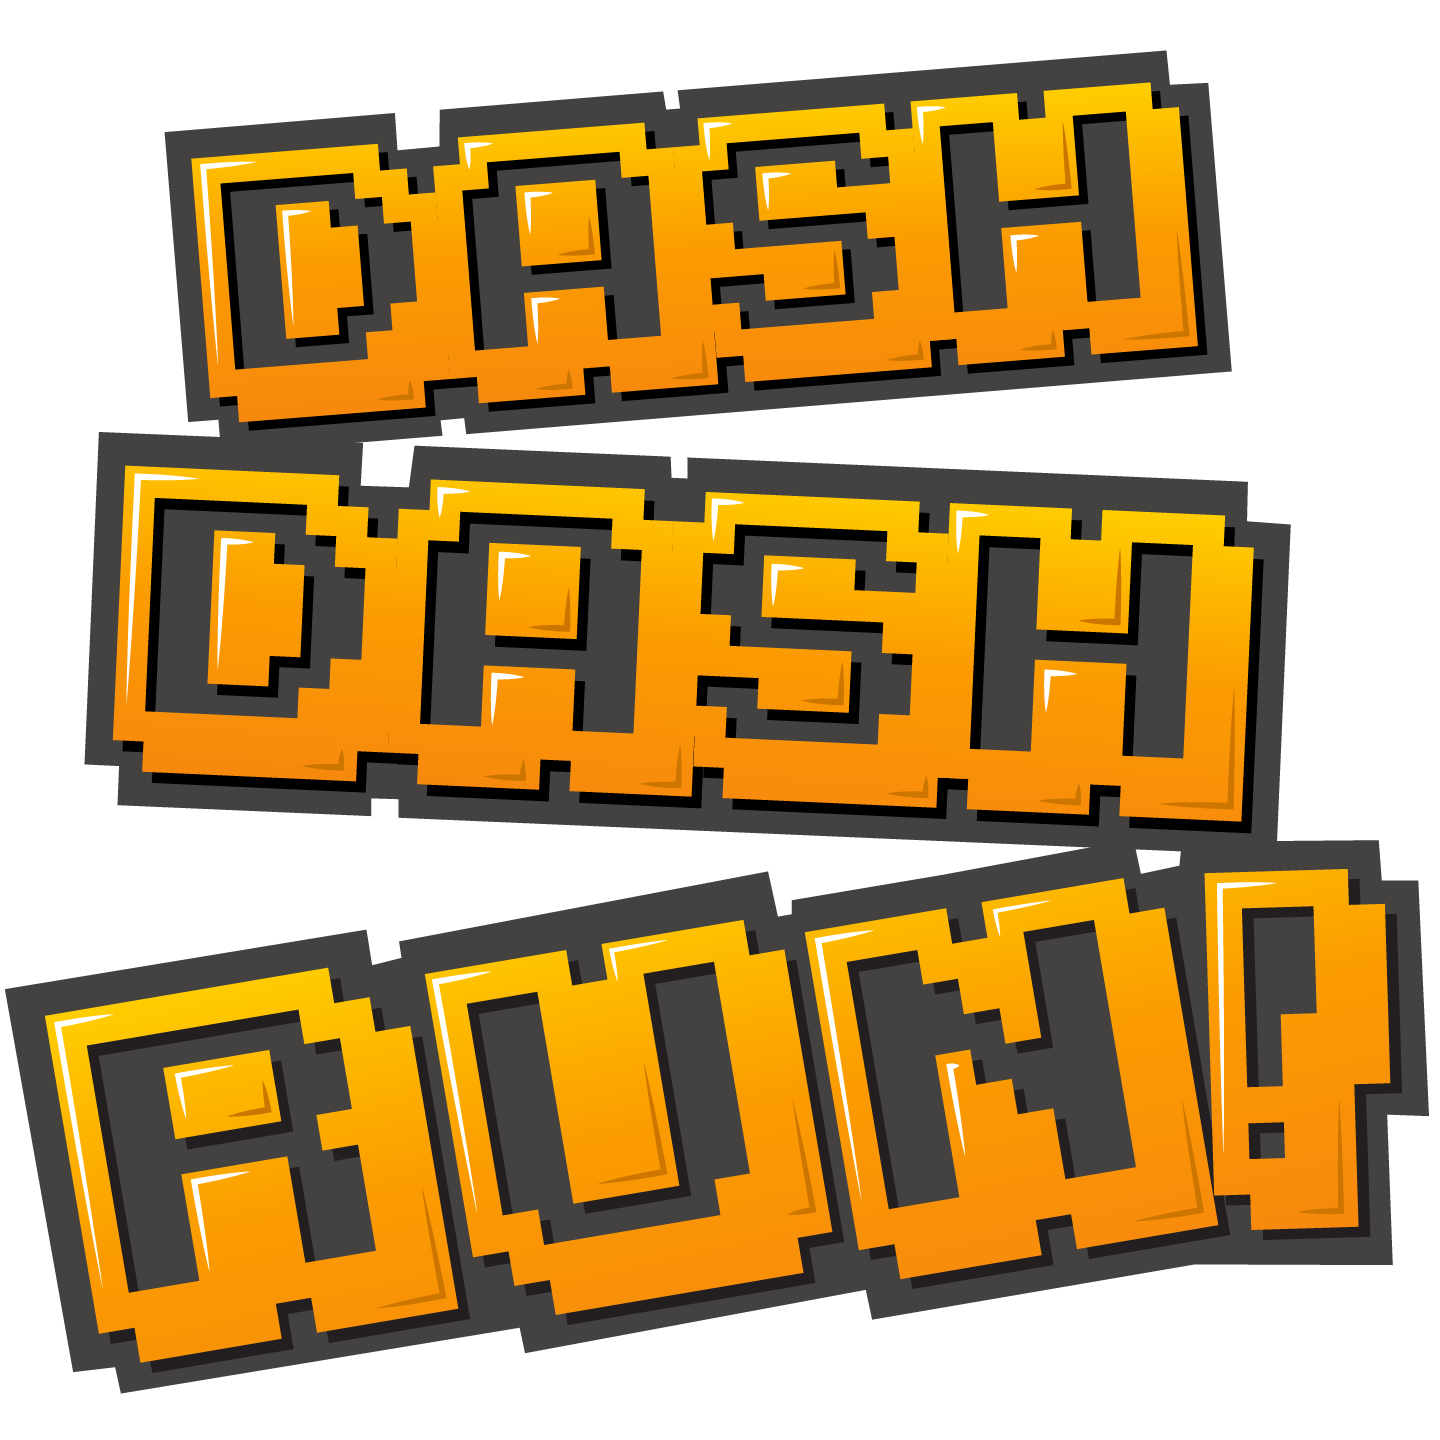 Dash Dash Run! Arcade VR Racing Game